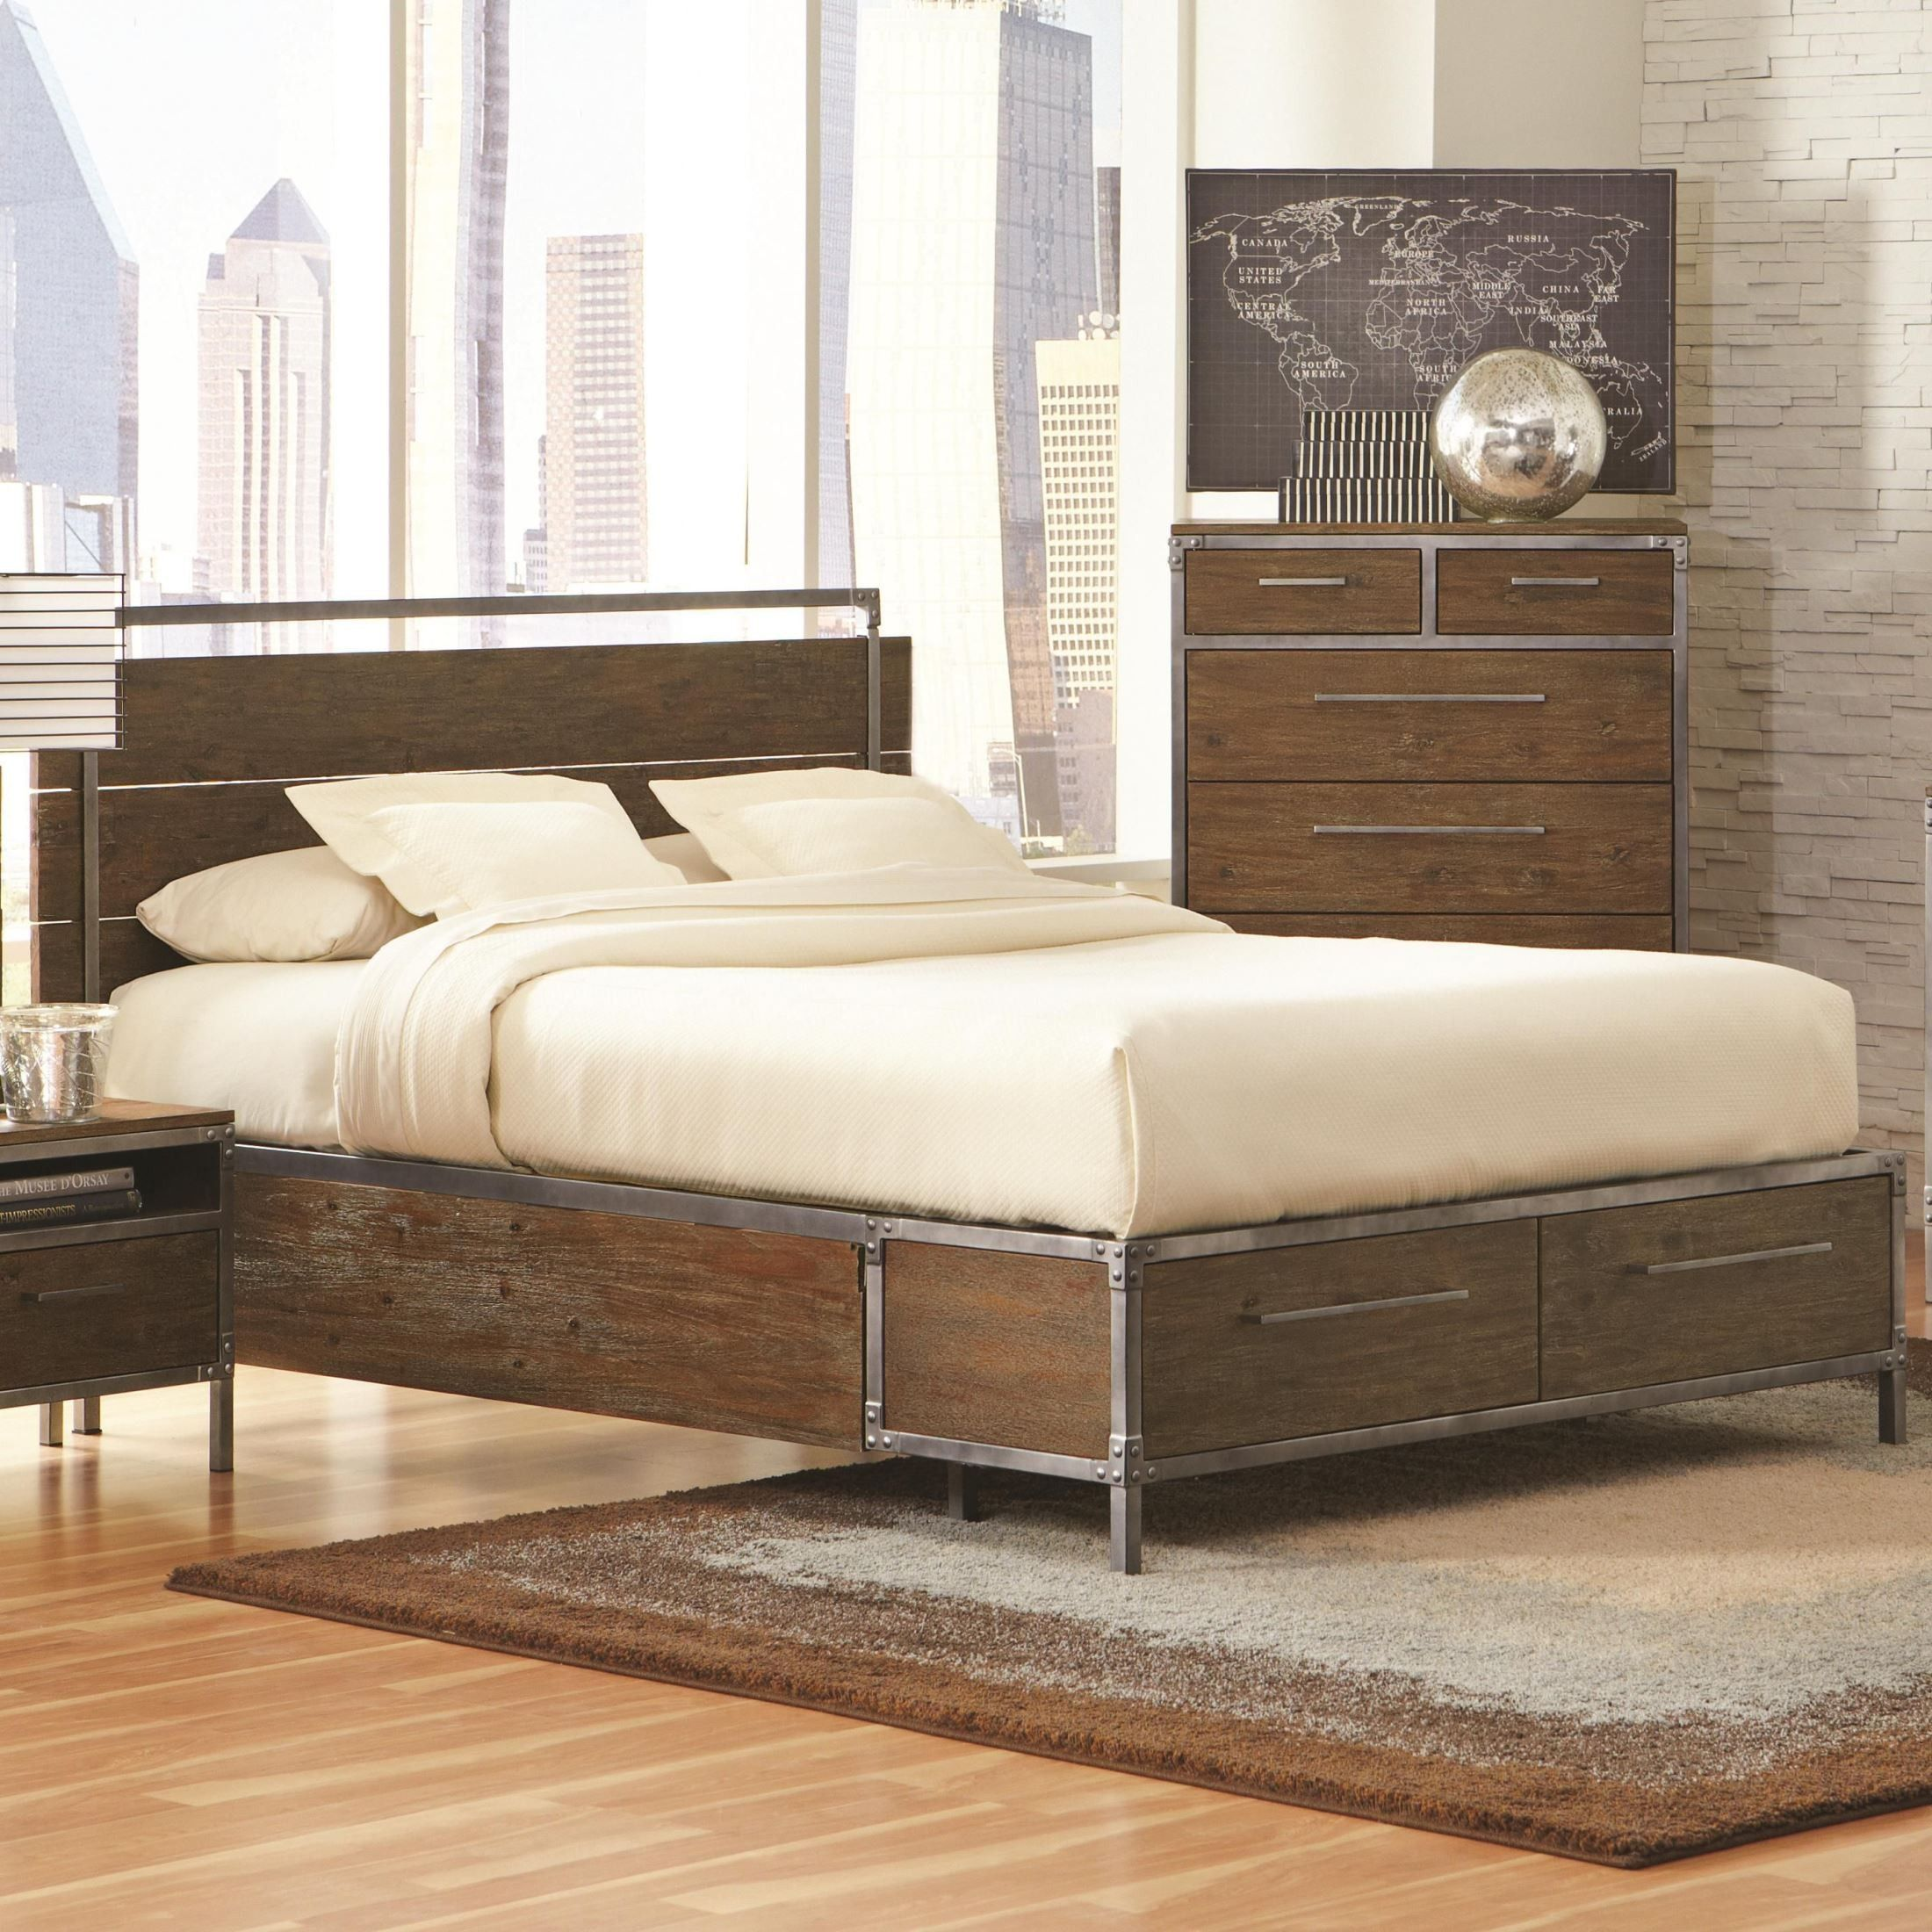 chair king sugar land how to make covers this edgy industrial bed will be a great focal point for